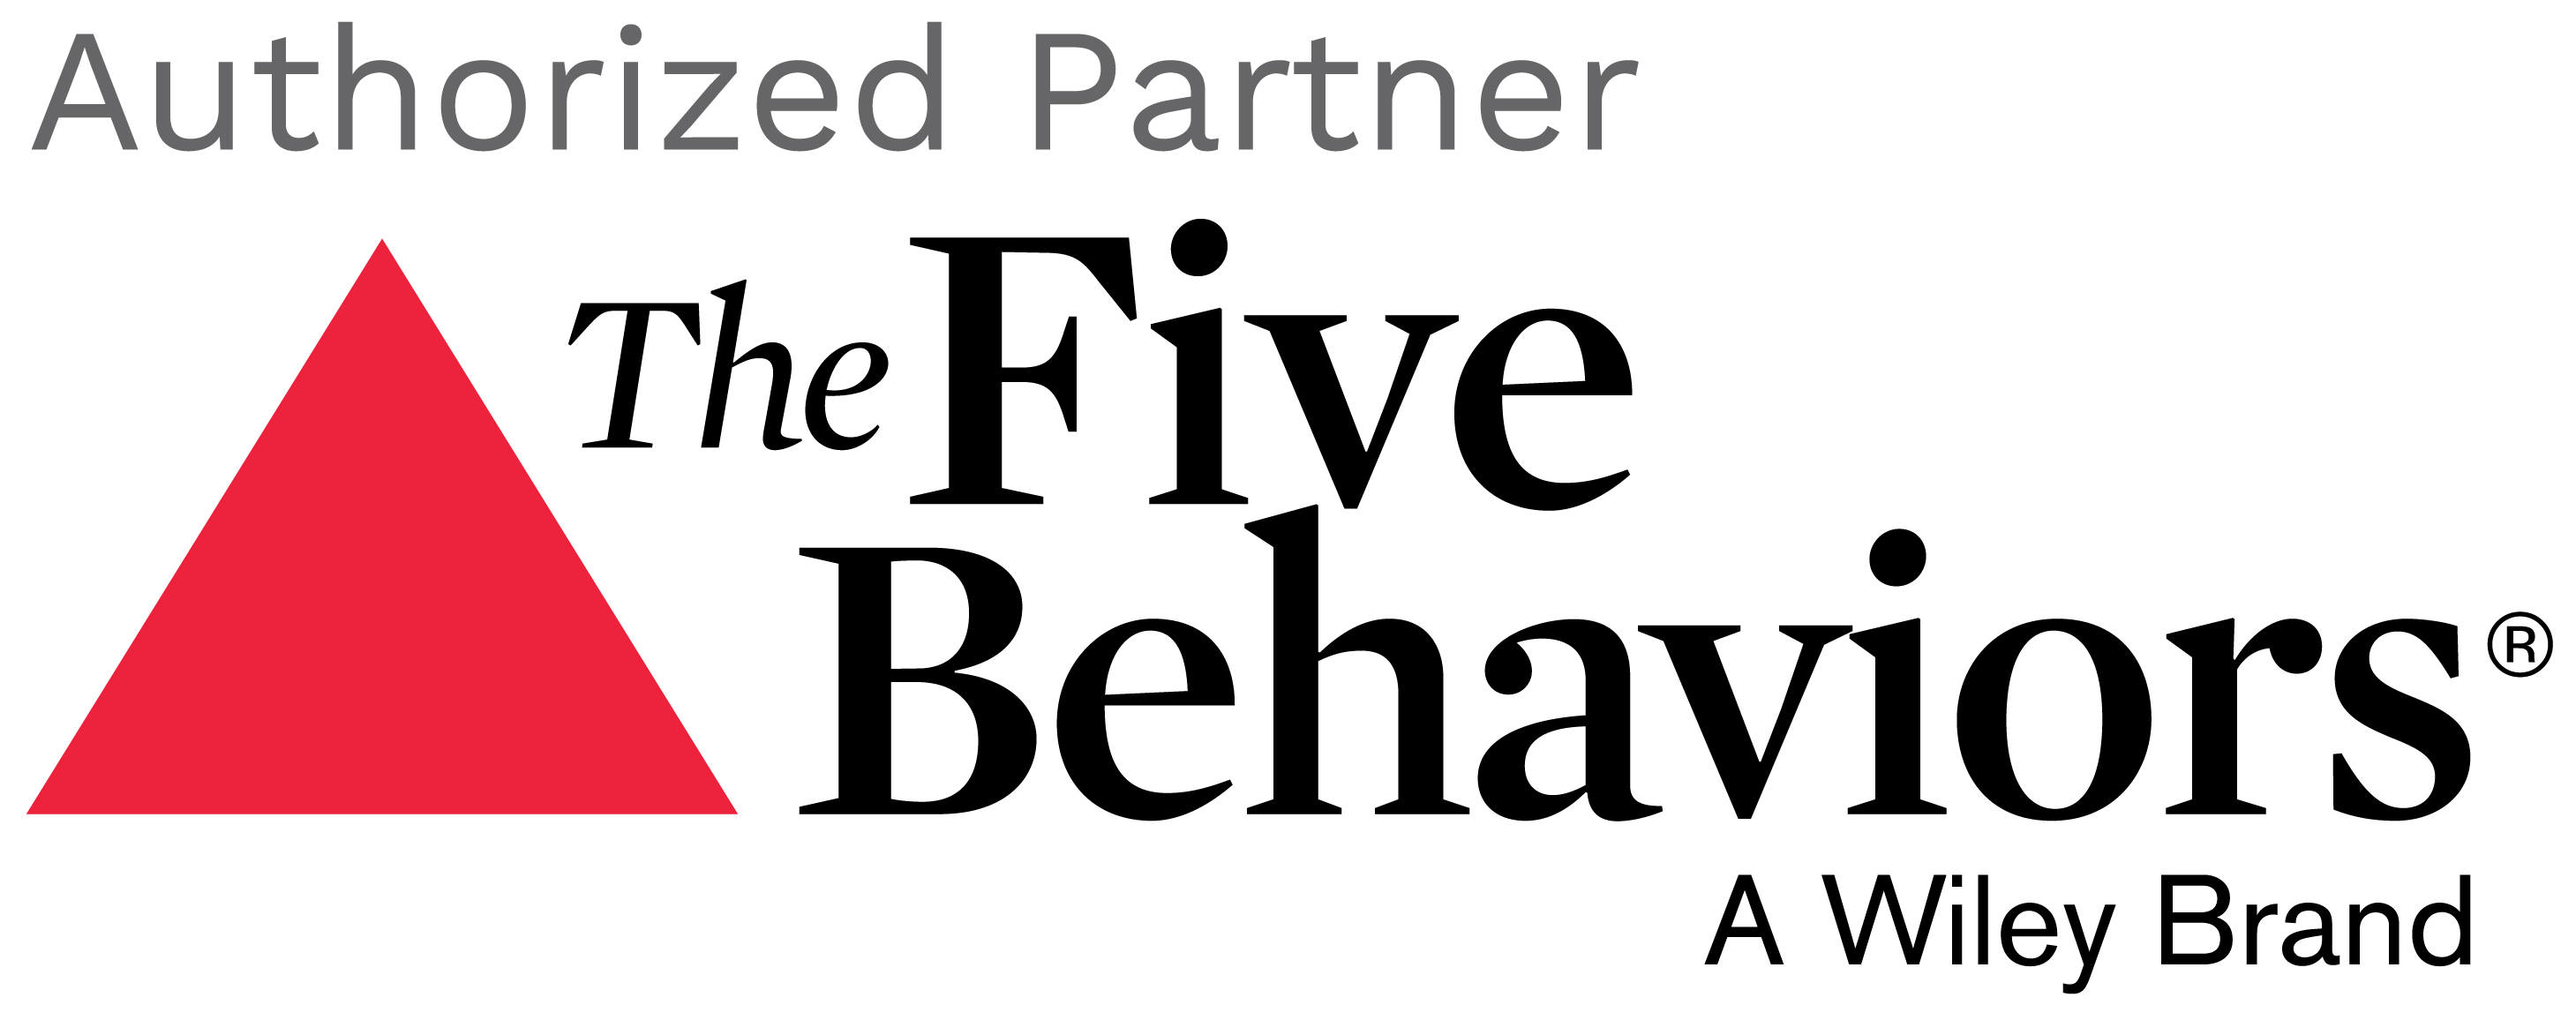 Five Behaviours Authorized Partner